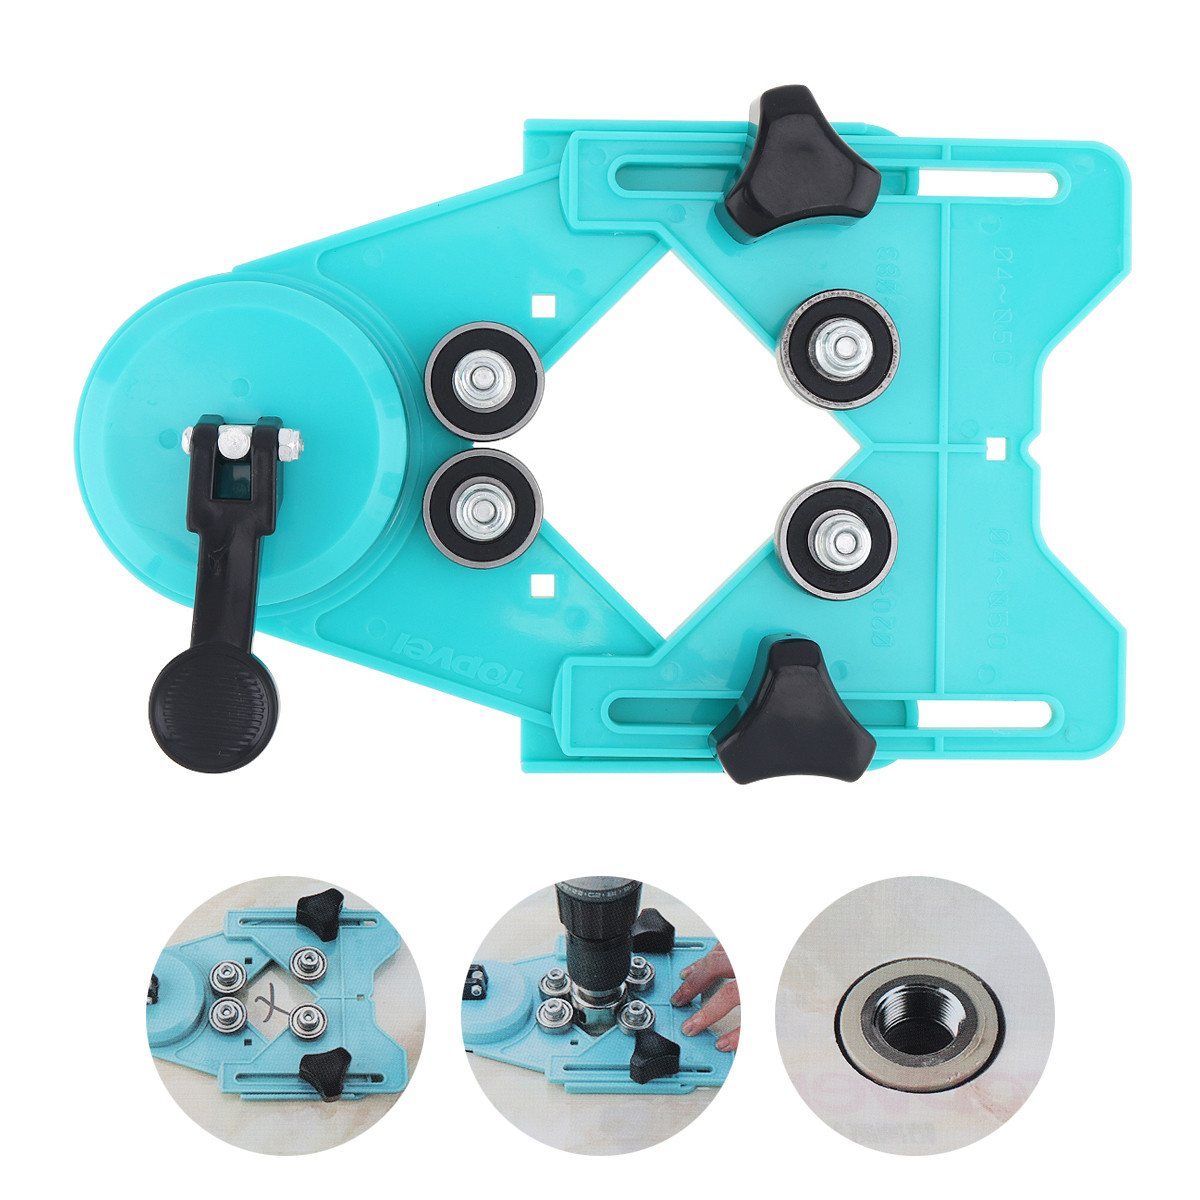 Portable Adjustable Engineering Plastic Tile Hole Locator With Rubber Suction Cup 4-83mm Clamping Range For Glass Tile Openings